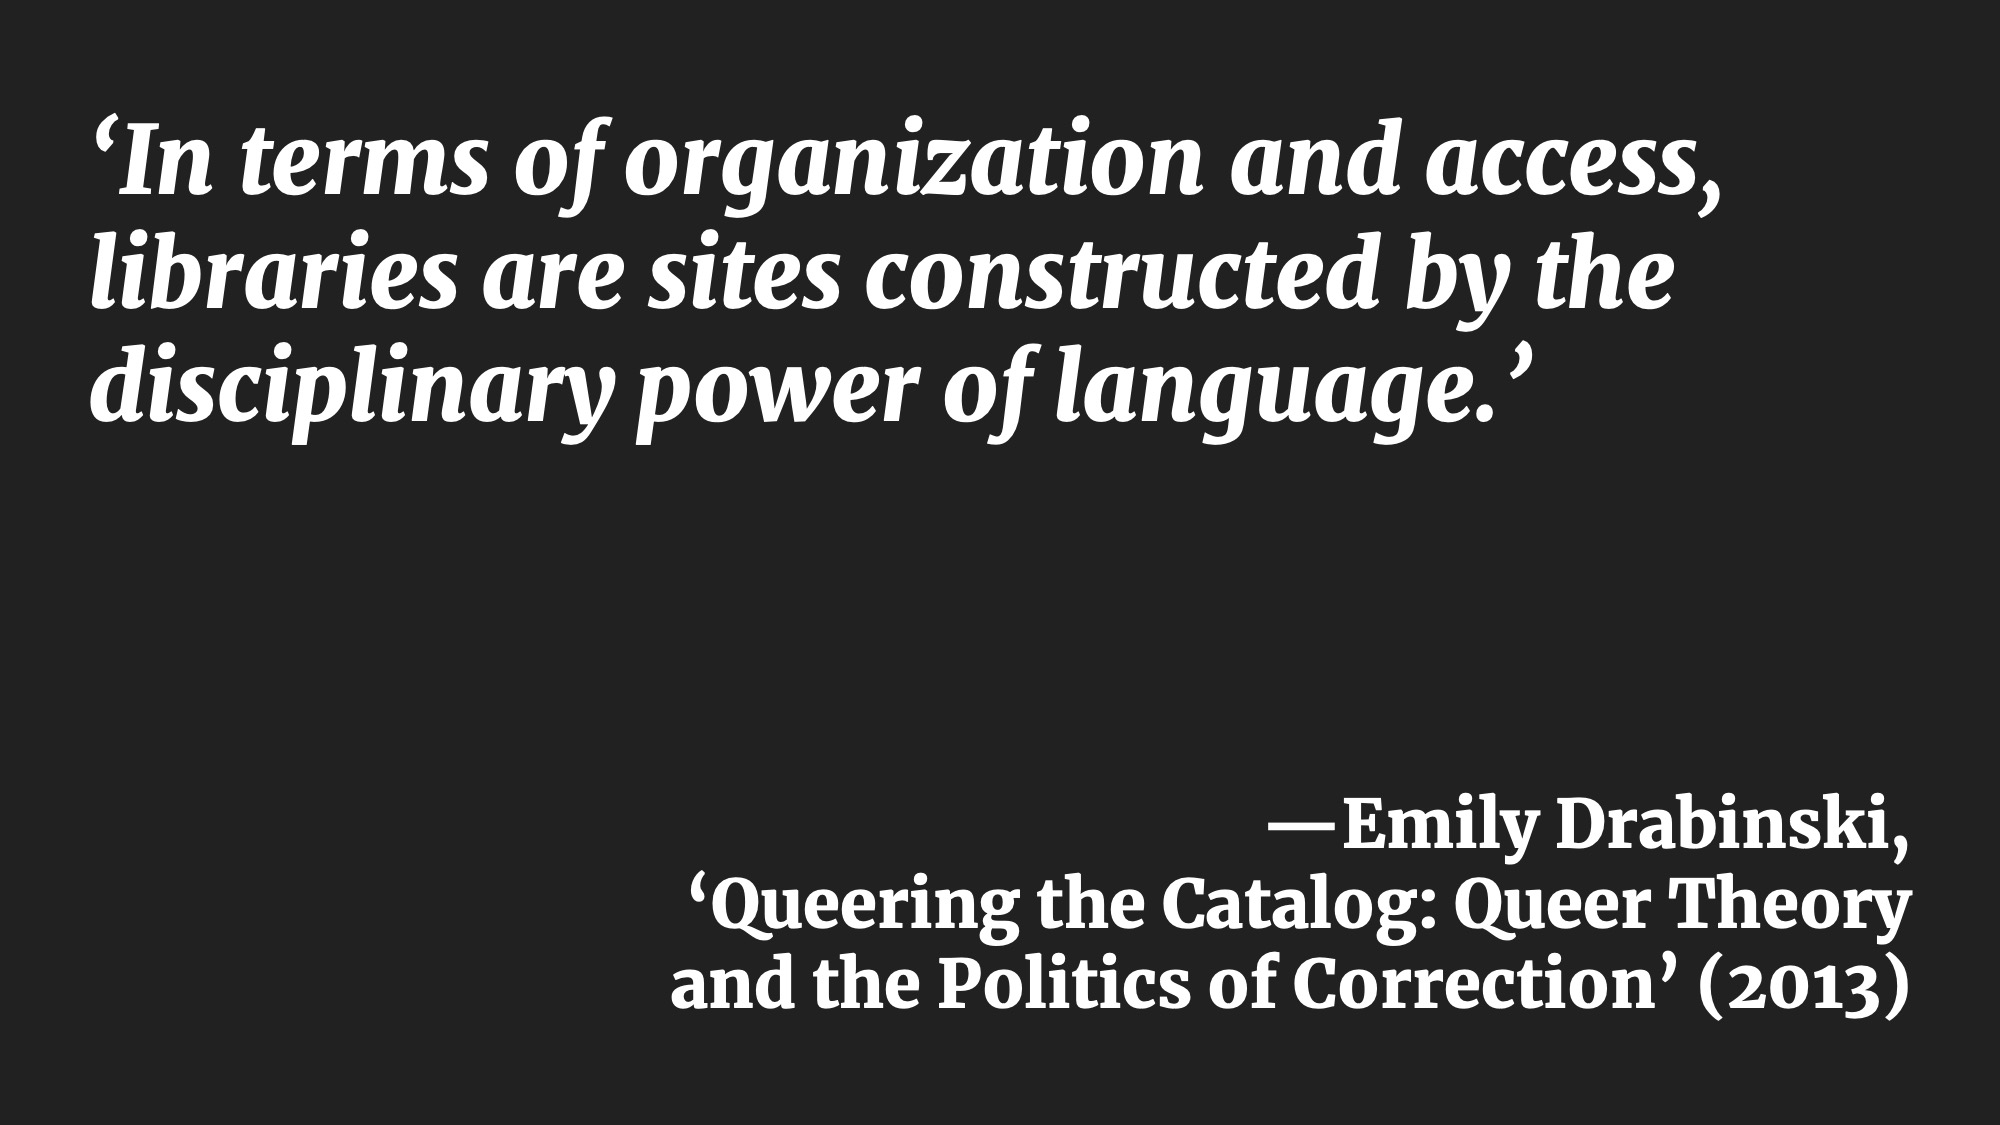 'In terms of organization and access, libraries are sites constructed by the disciplinary power of language.' —Emily Drabinski, 'Queering the Catalog: Queer Theory and the Politics of Correction' (2013)